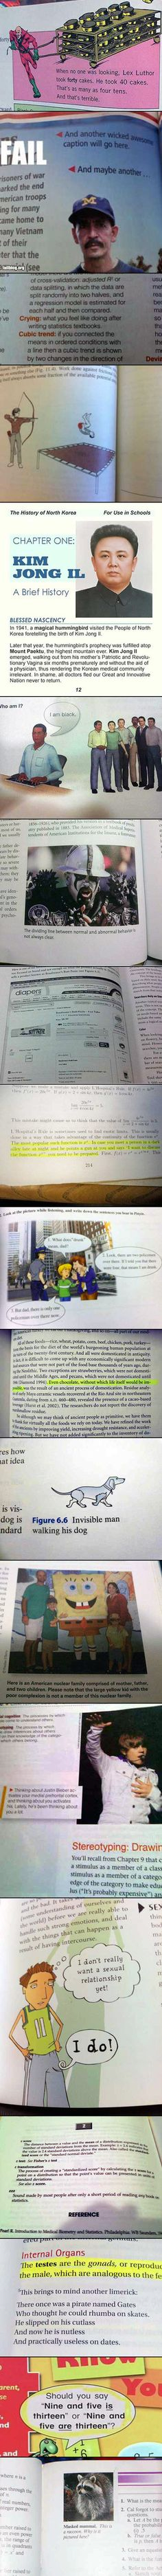 We have rounded up some strange, yet real, things found in school textbooks.